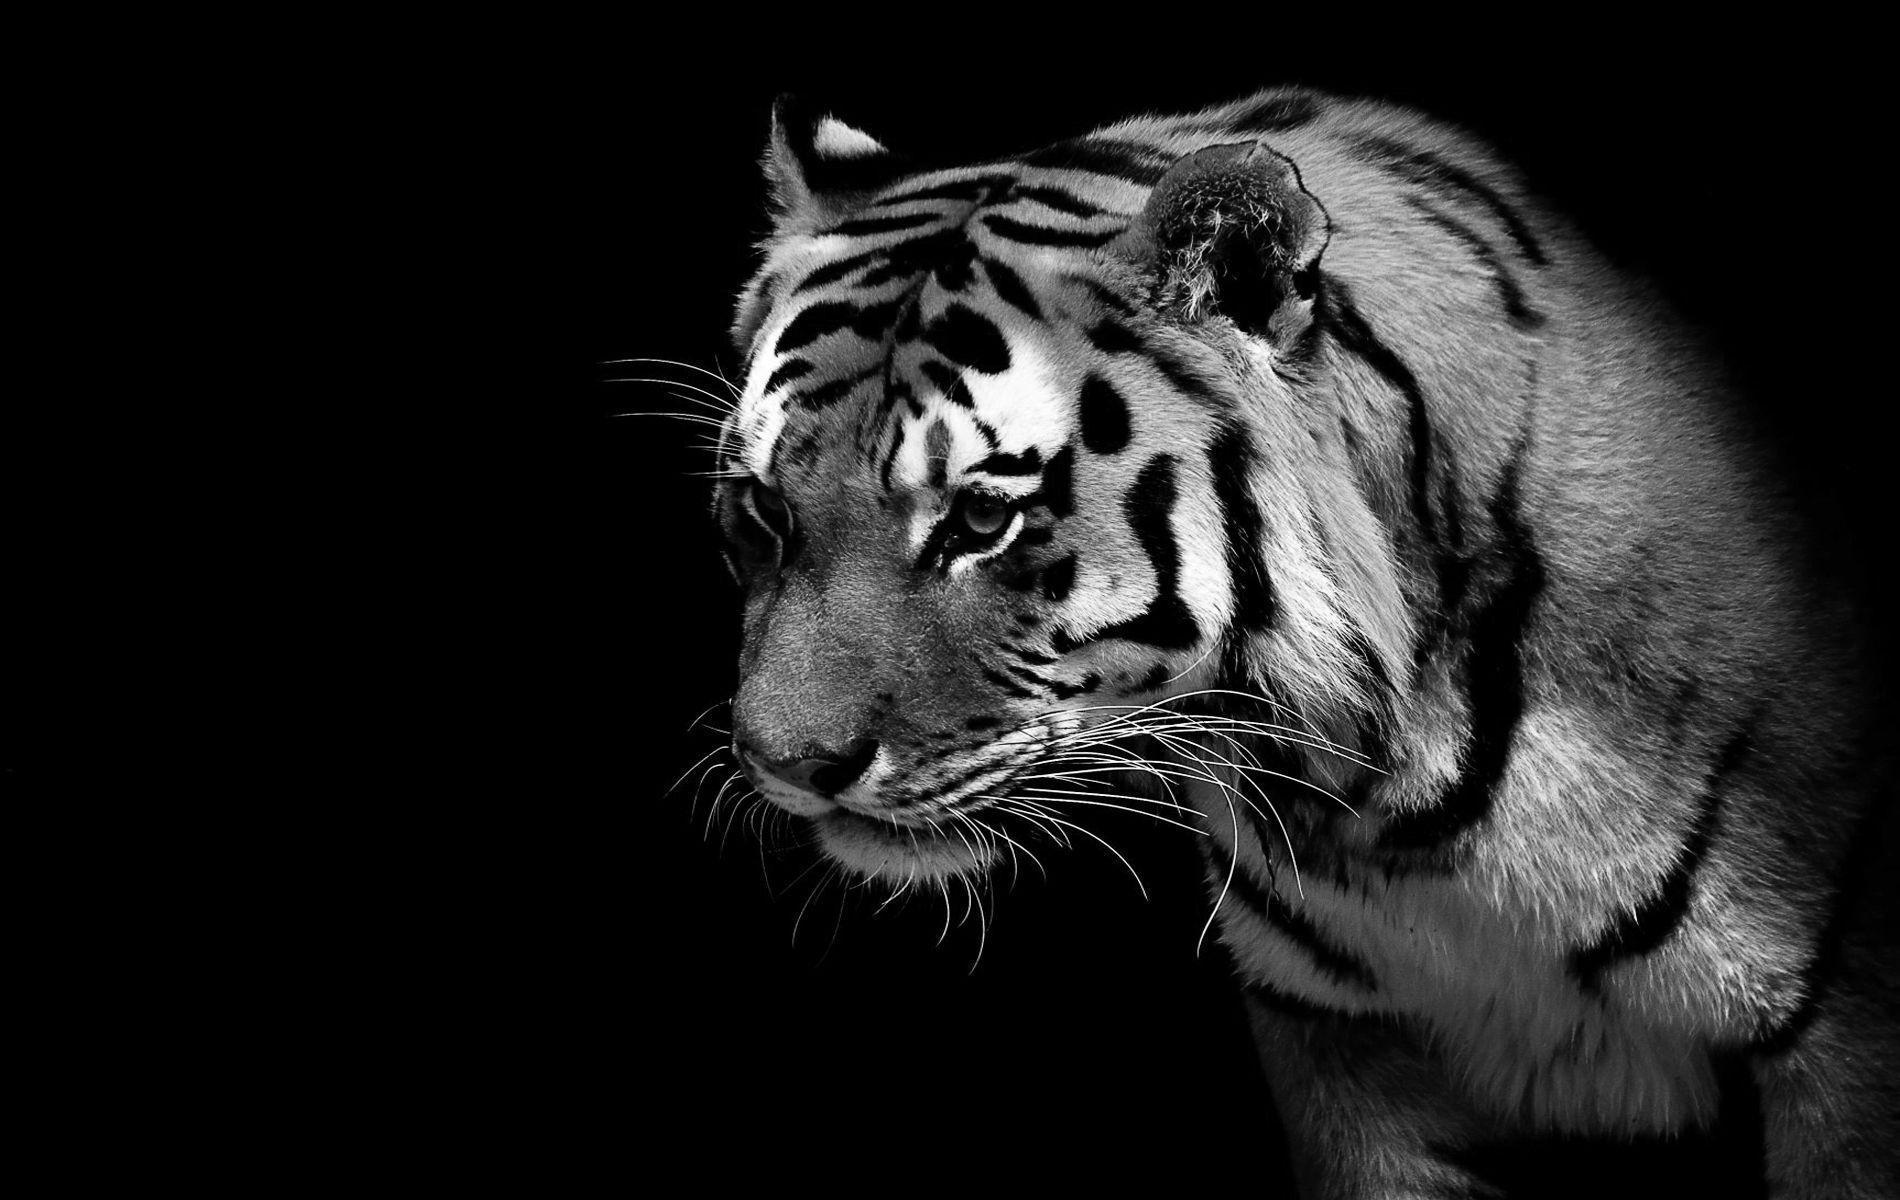 Black Tiger Wallpapers Top Free Black Tiger Backgrounds Wallpaperaccess